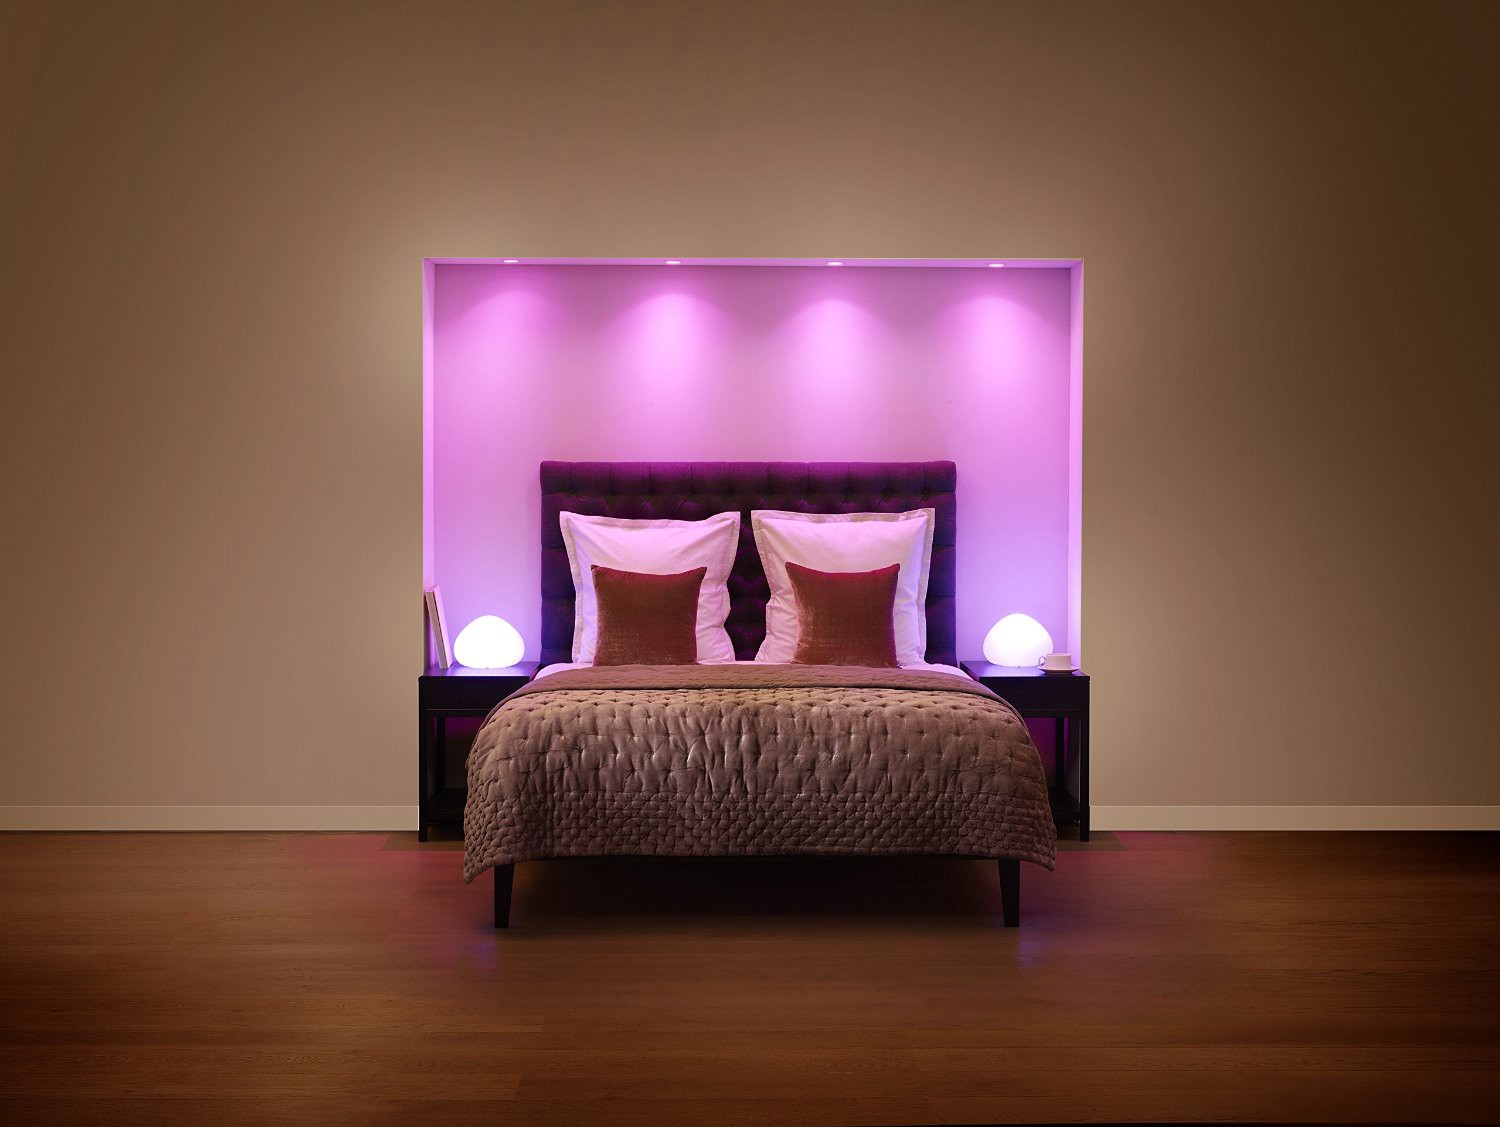 philips hue ideas to make your room dope dike musk medium. Black Bedroom Furniture Sets. Home Design Ideas